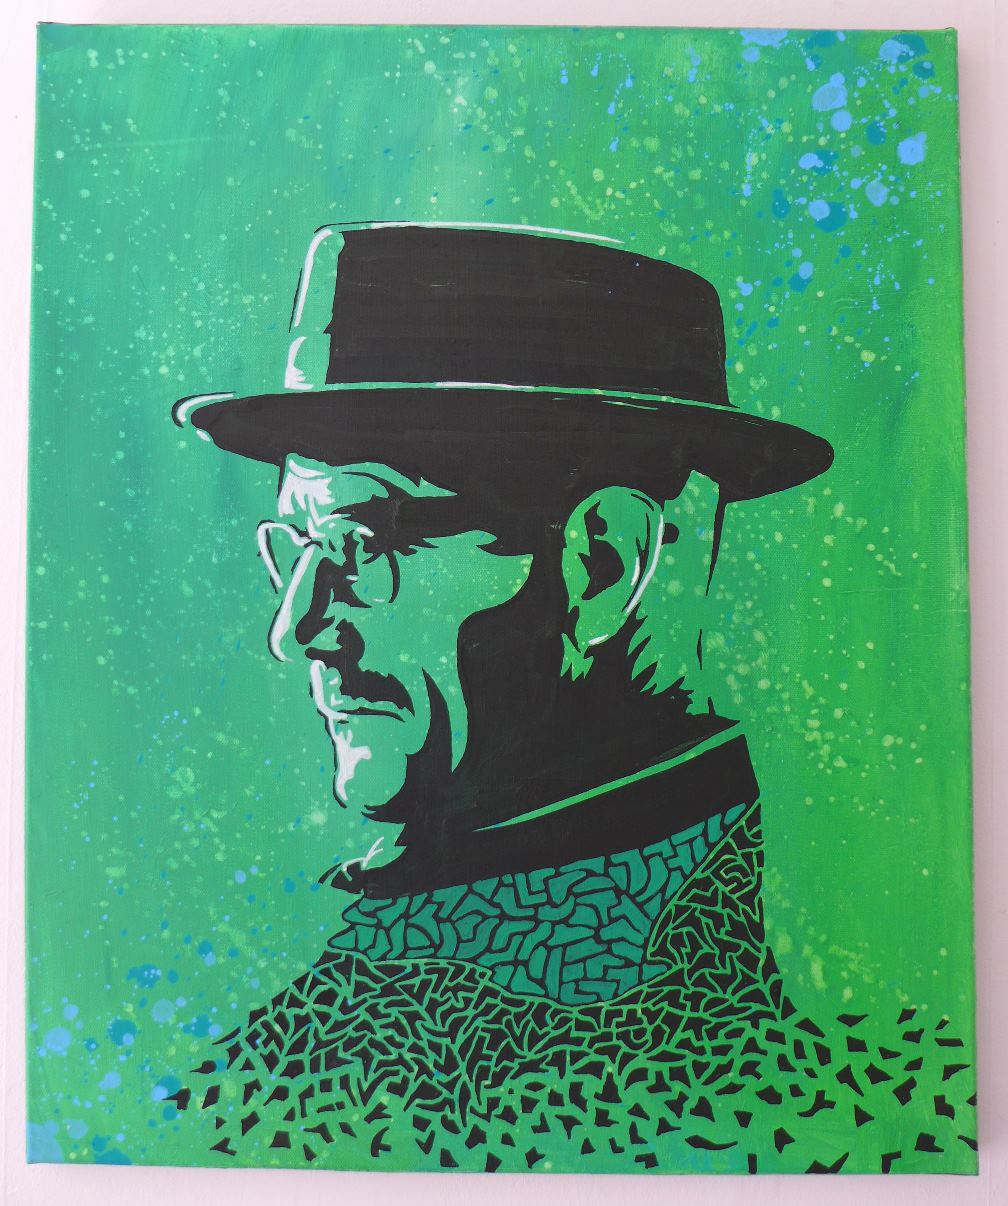 tableau-street-art-heinsenberg-meth-breaking-bad.jpg